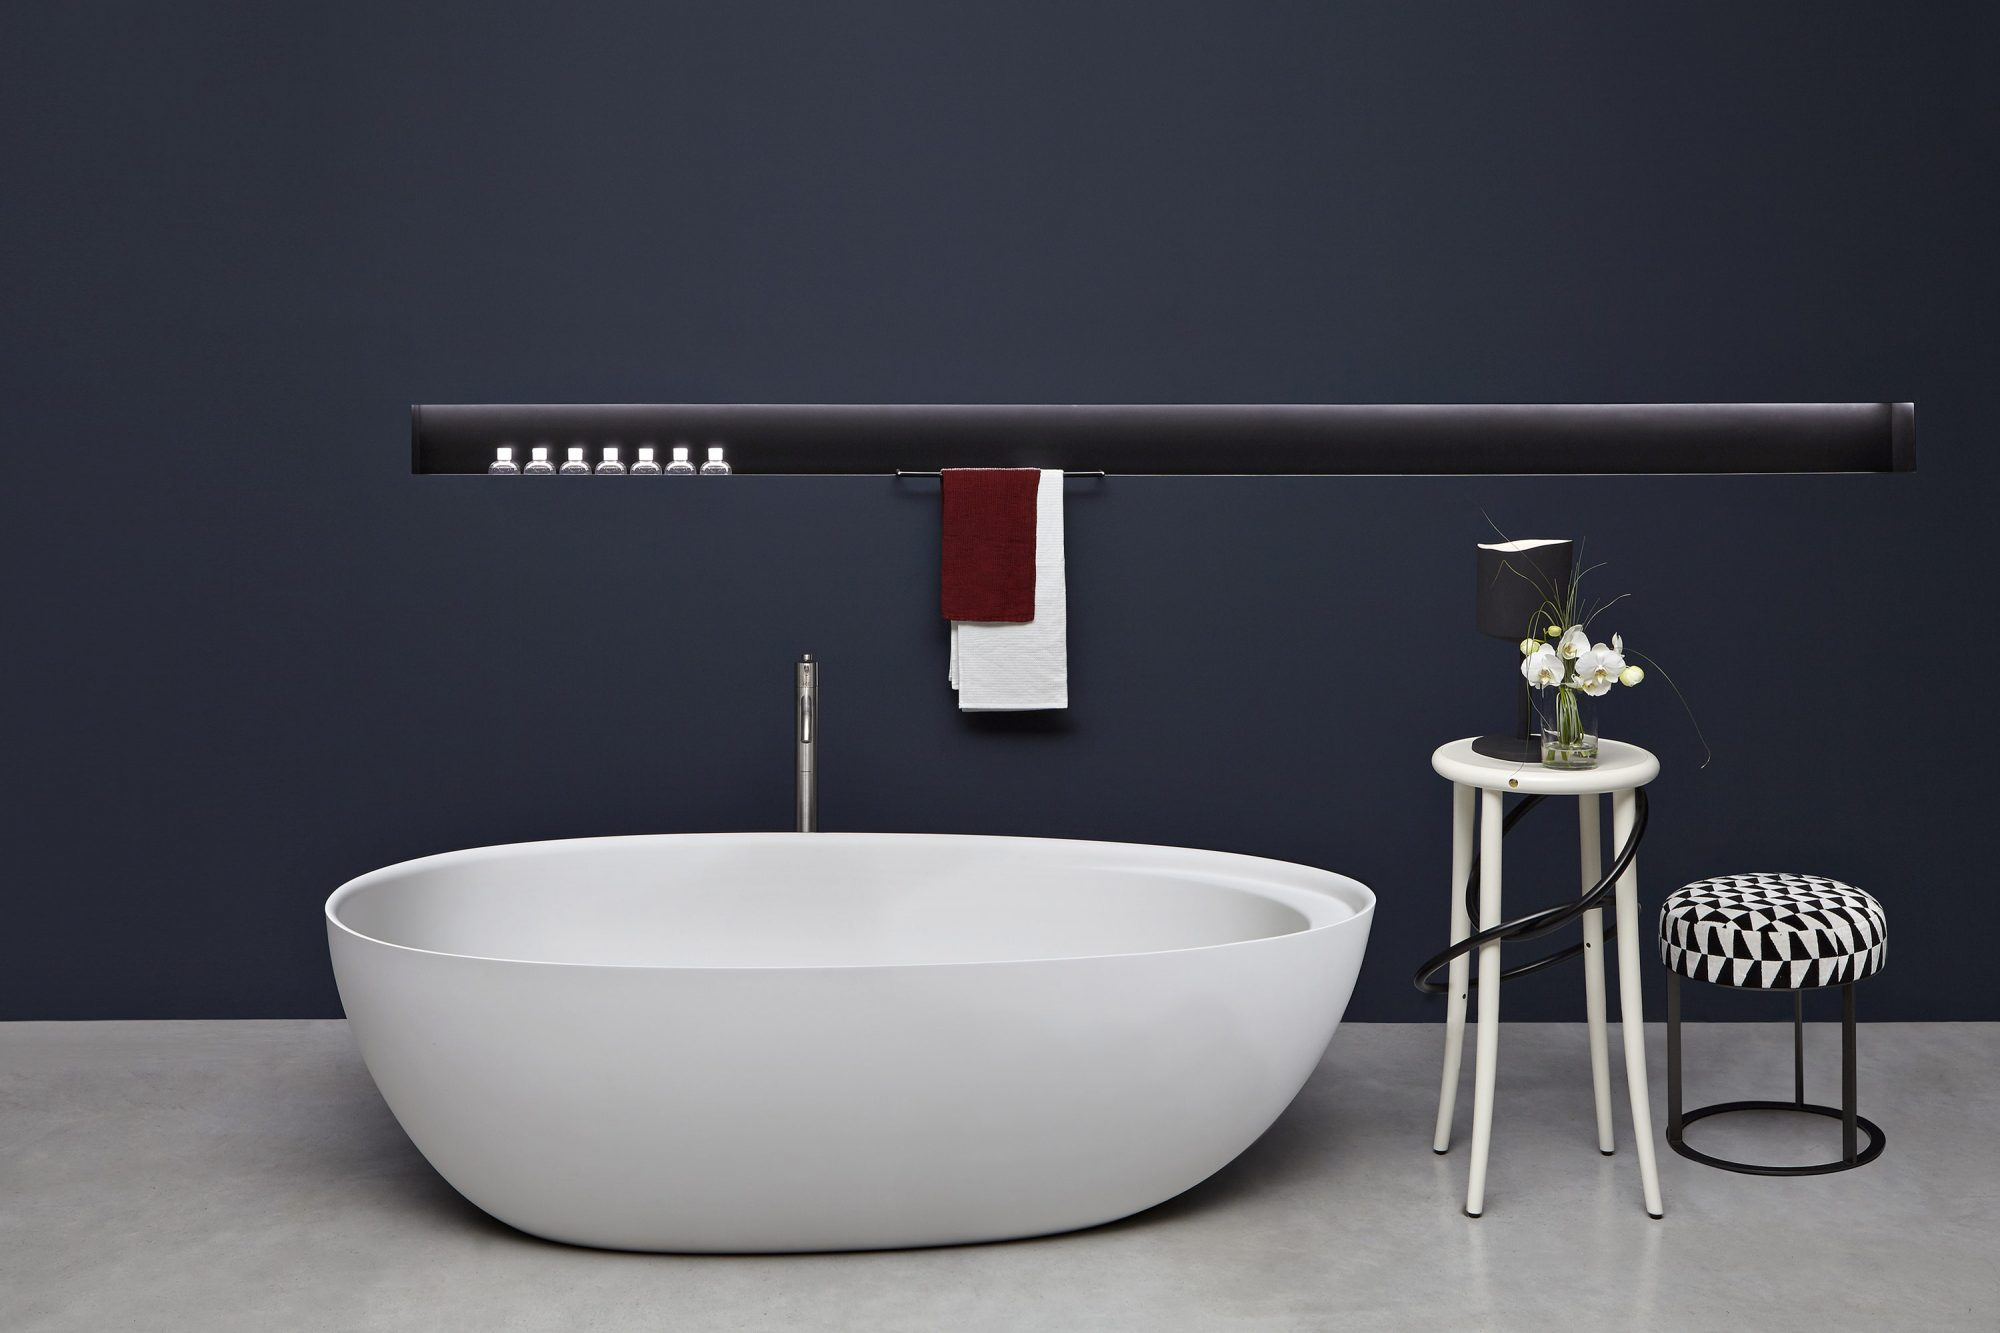 West One Bathrooms Inspiration Antonio Lupi Eclipse